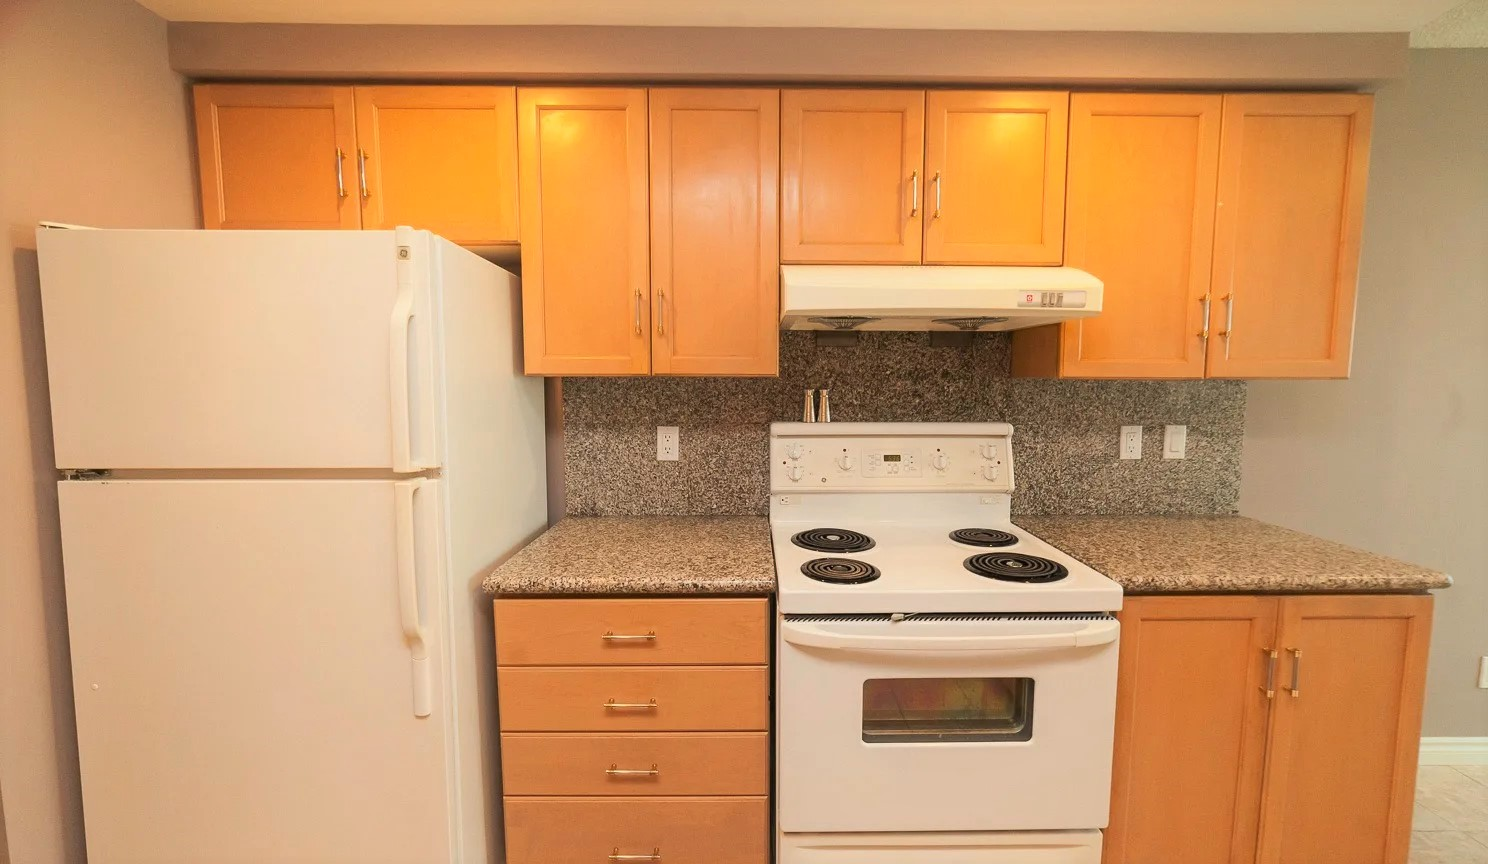 68 Simcoe kitchen with white fridge and stove, wooden cabinets and granite counters.